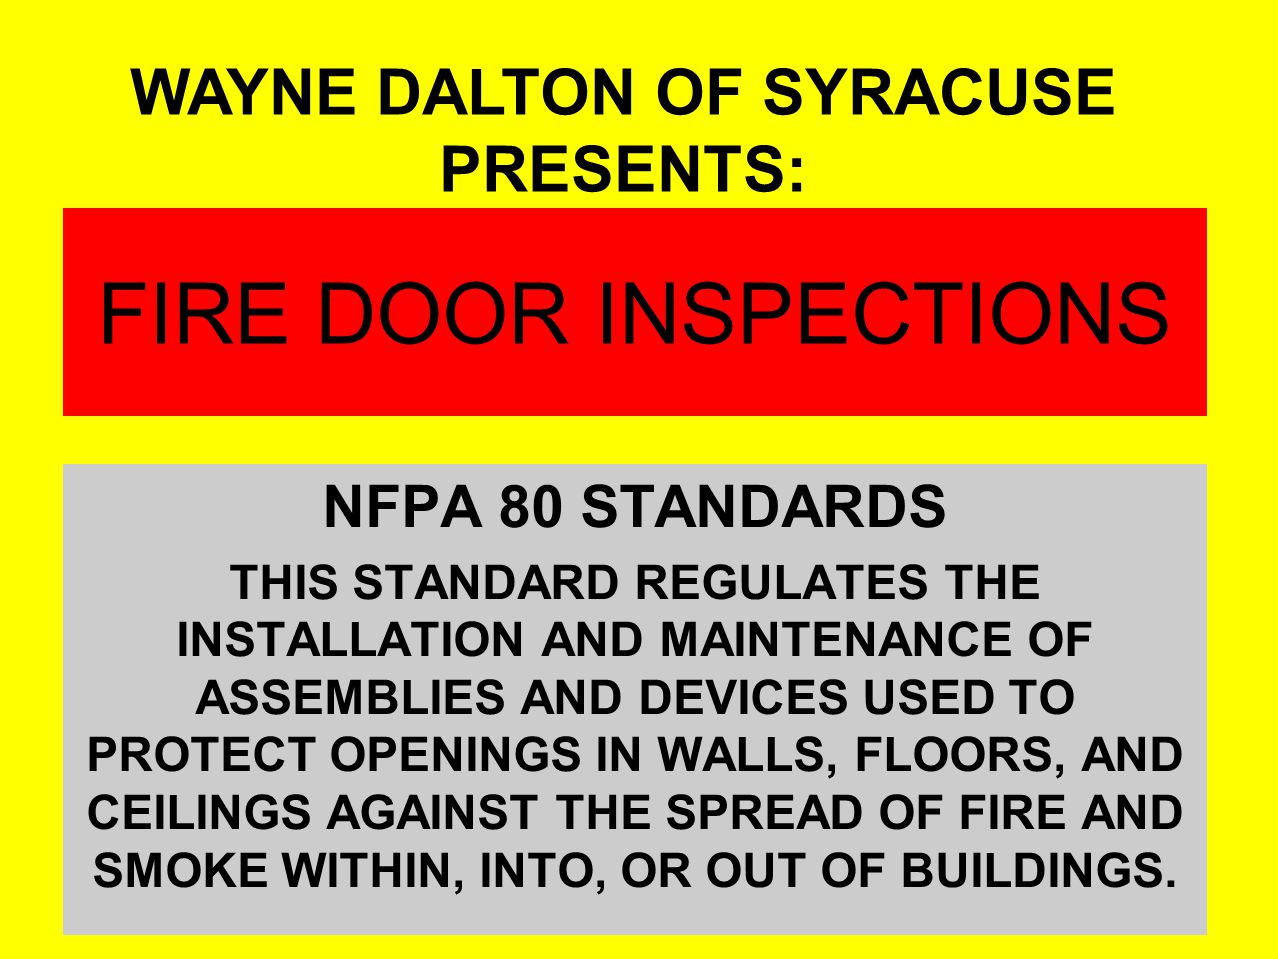 SILLS AND COUNTERTOPS FIRE DOORS MUST CLOSE COMPLETELY ACROSS THE FULL WIDTH OF THE OPENING NFPA 80 REQUIRES THE FLOOR STRUCTURE, COUNTERTOP OF SILL BE CONSTRUCTED ON NONCOMBUSTIBLE MATERIAL COUNTERTOPS AND SILLS HAVE REQUIRED PROJECTIONS FOR BOTH WIDTH AND THROUGH THE OPENING OF THE COUNTERTOP MUST BE SEPARATELY LABELED TYPICAL RATING ON COUNTERTOP IS 1.5 HOURS.